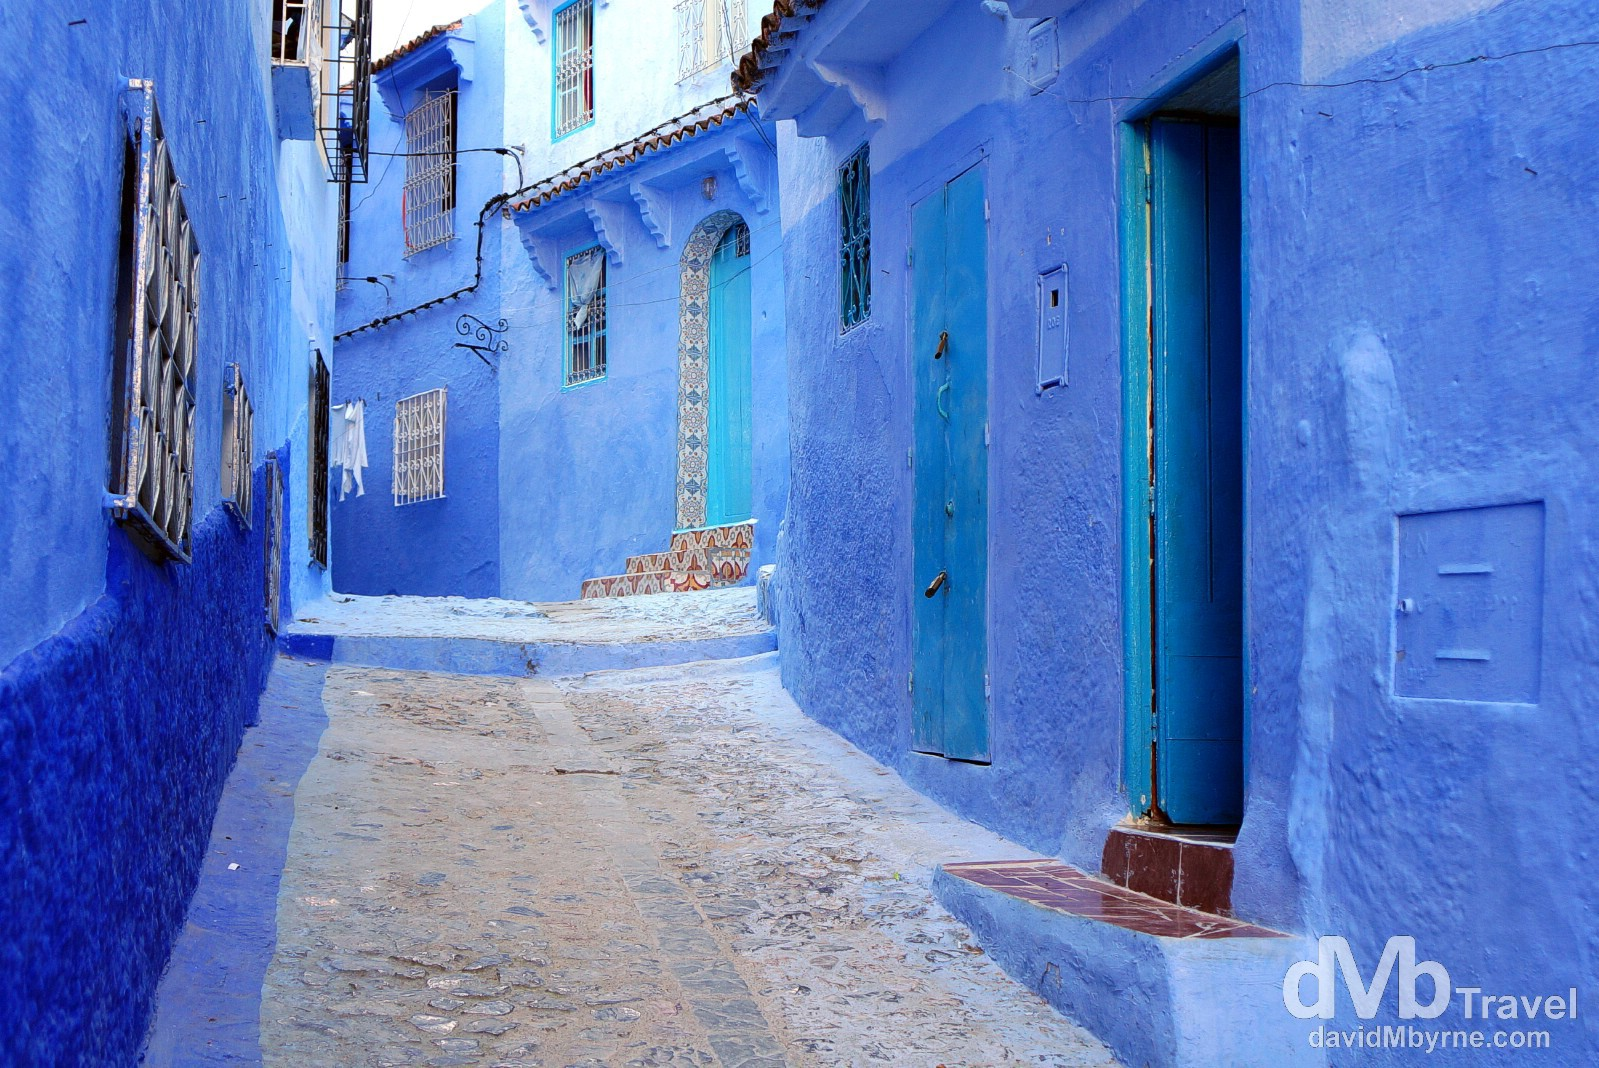 A lane in the medina of Chefchaouen, Morocco. May 31st, 2014.